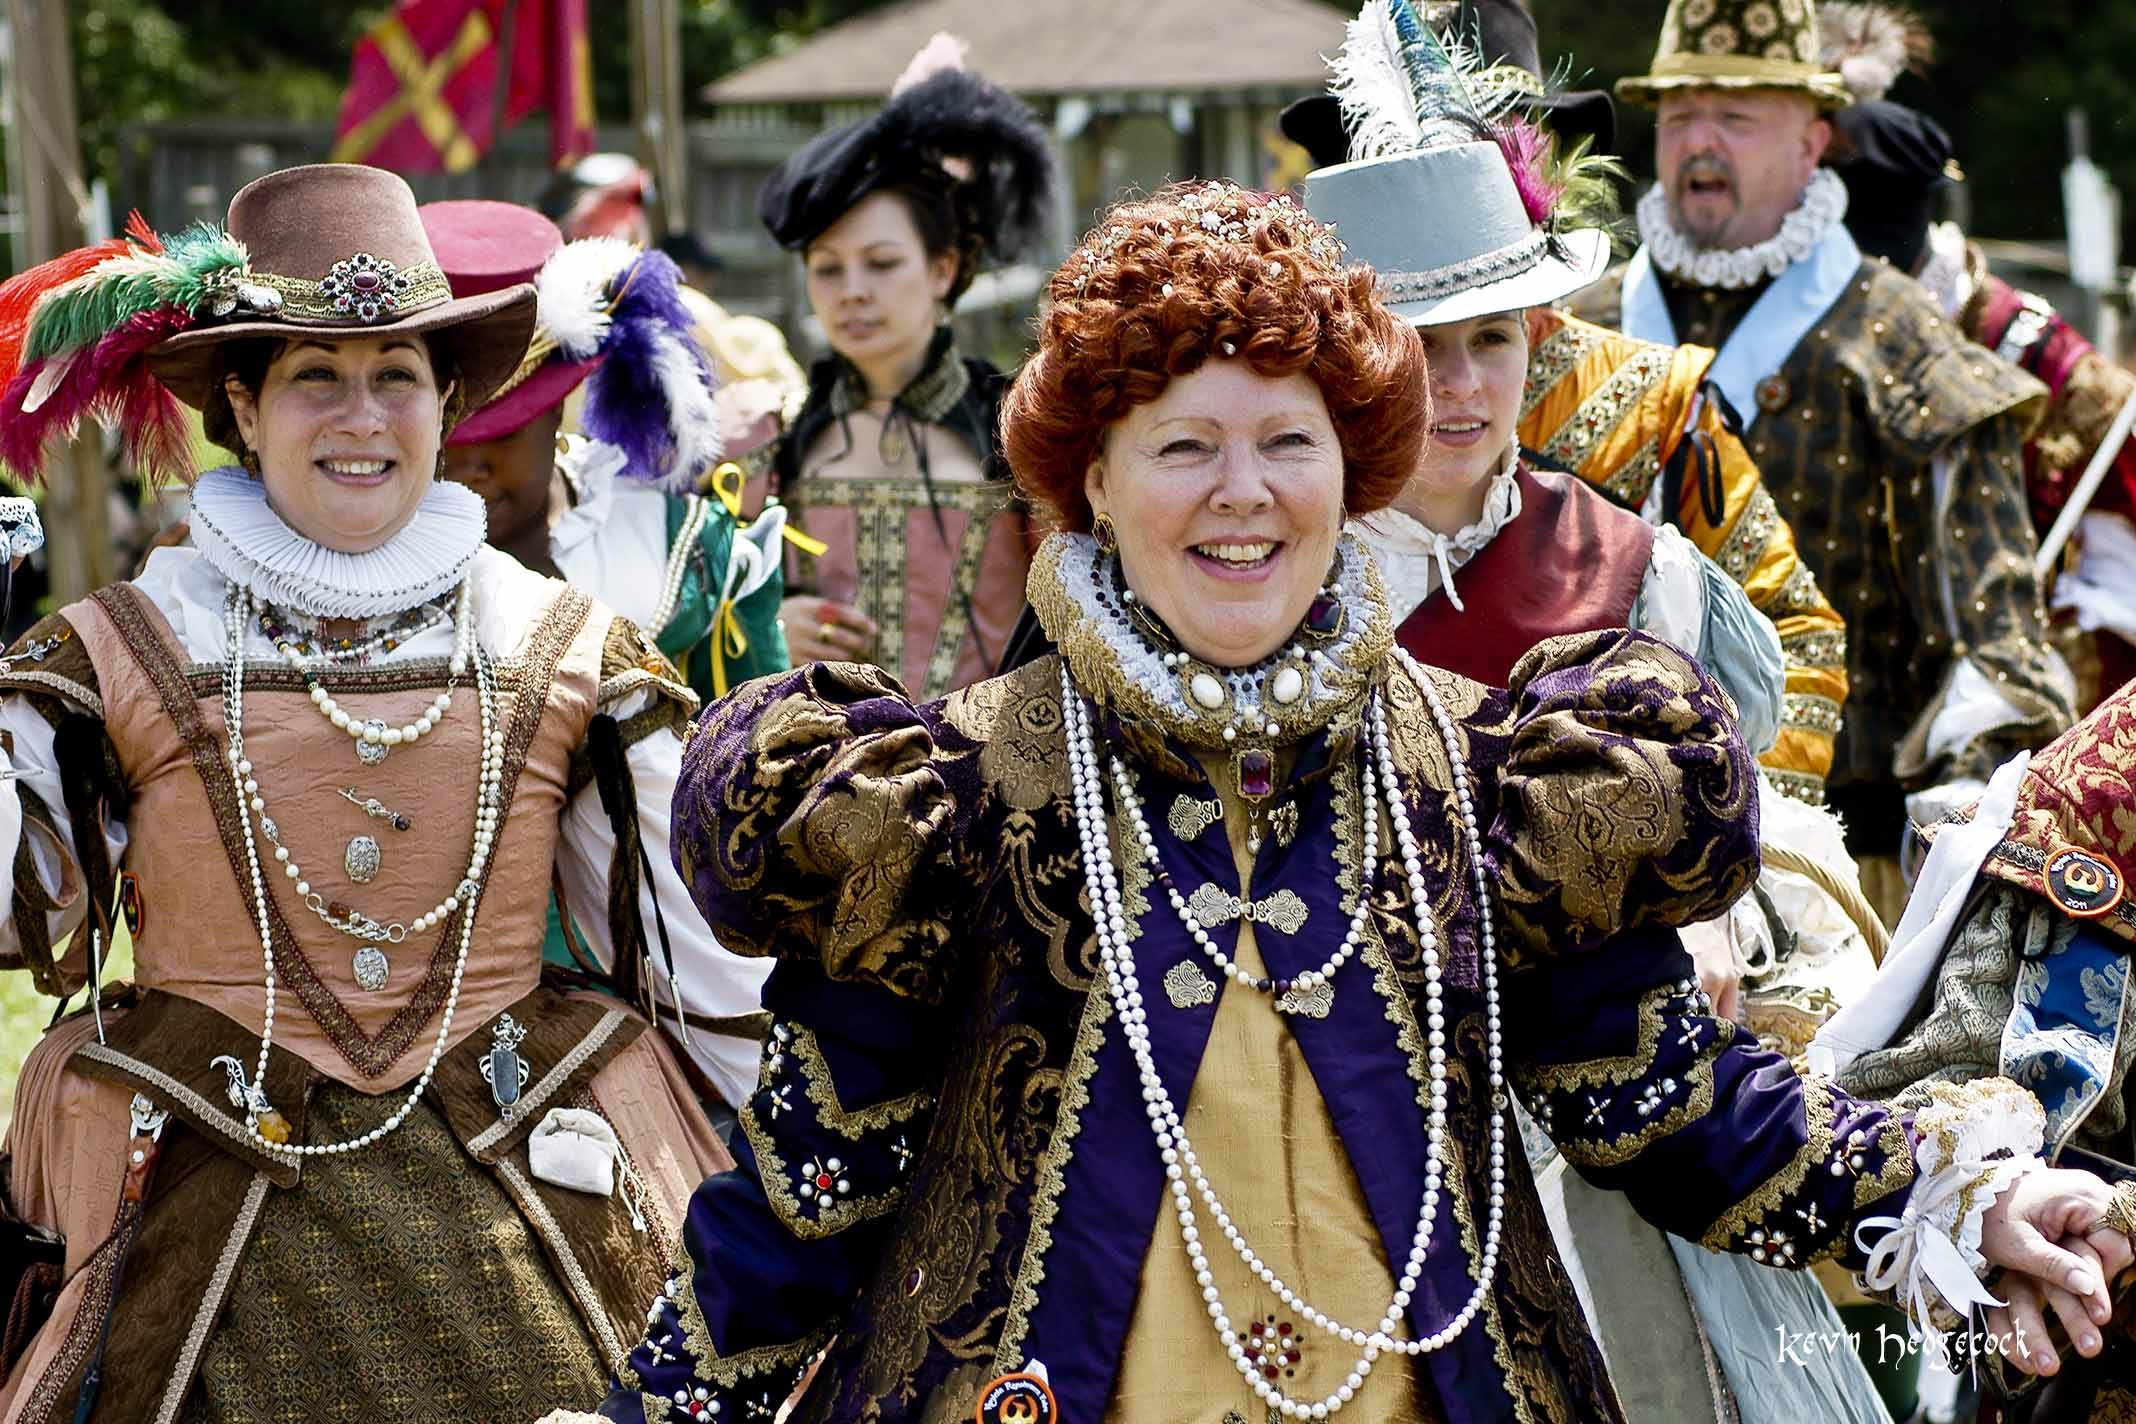 Renaissance Fairs: Why You Should Plan A Trip To A Renaissance Faire This Summer